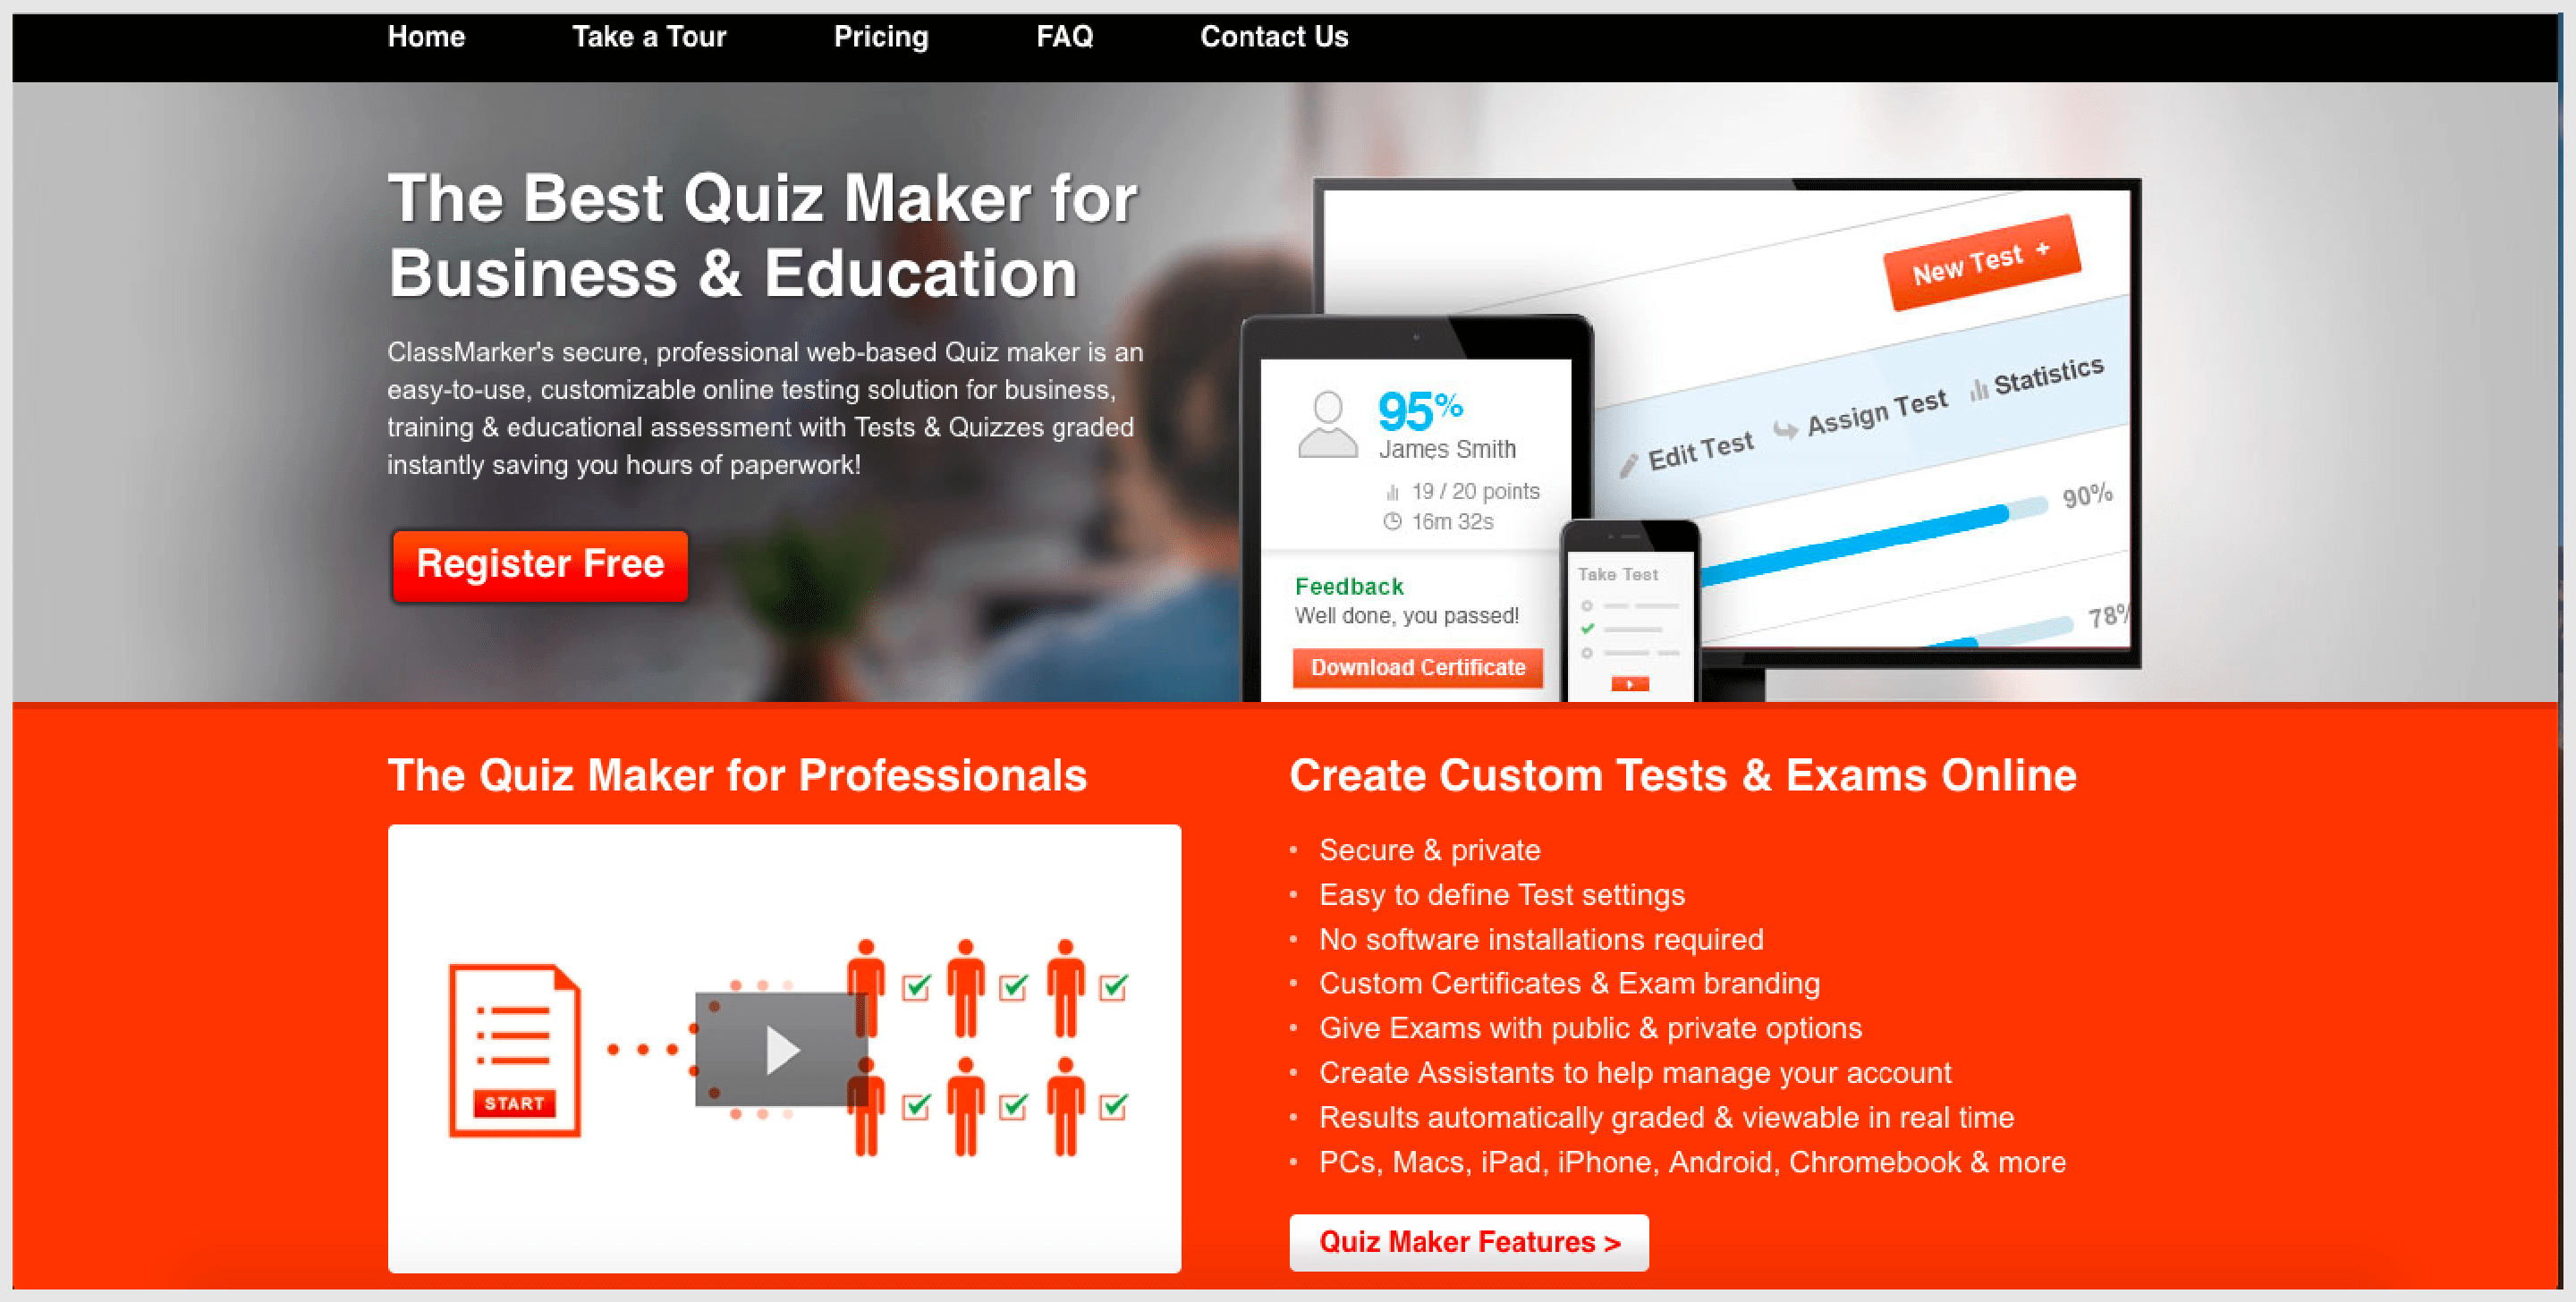 ClassMarker is an online quiz maker that is mainly dedicated to teachers and business organizations.